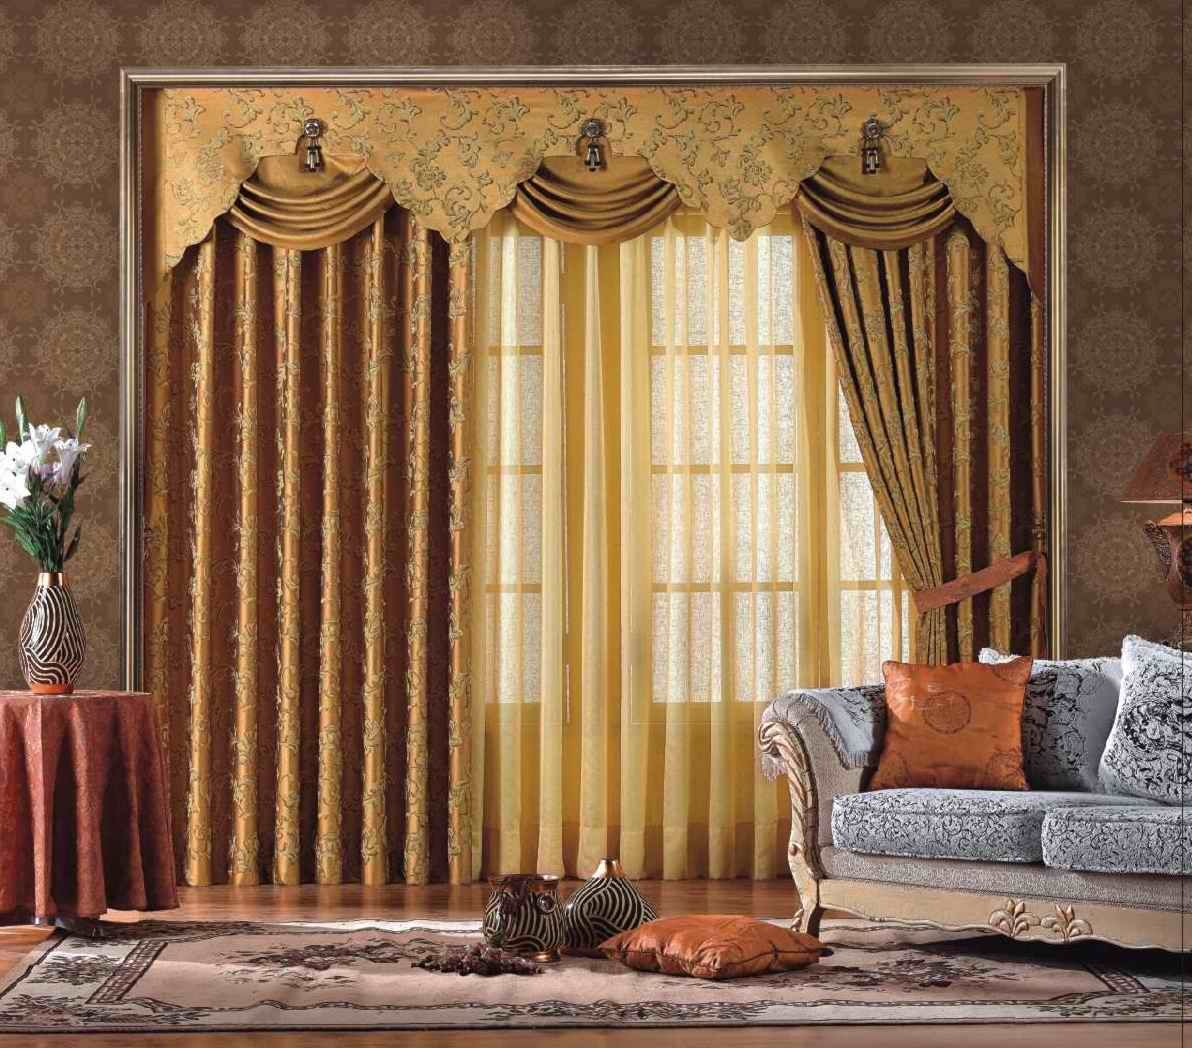 Living Room Curtain Design Adorable Architecture  Living Room Curtains With Valance Sutntljr Gorgeous Design Ideas